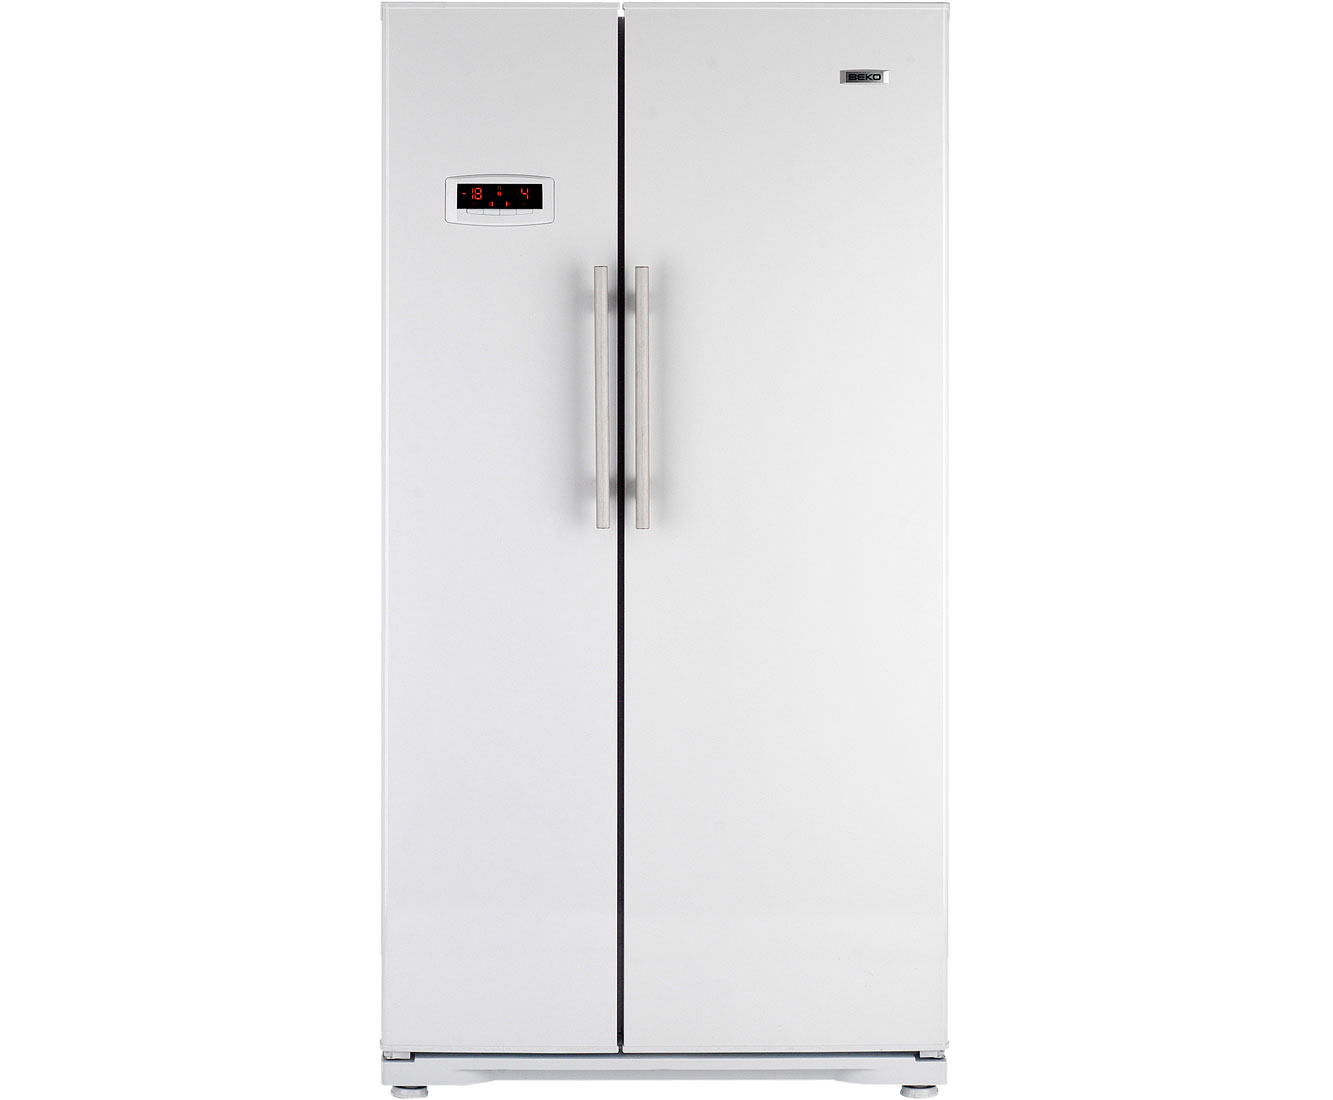 Beko GNEV120APW American Fridge Freezer - White